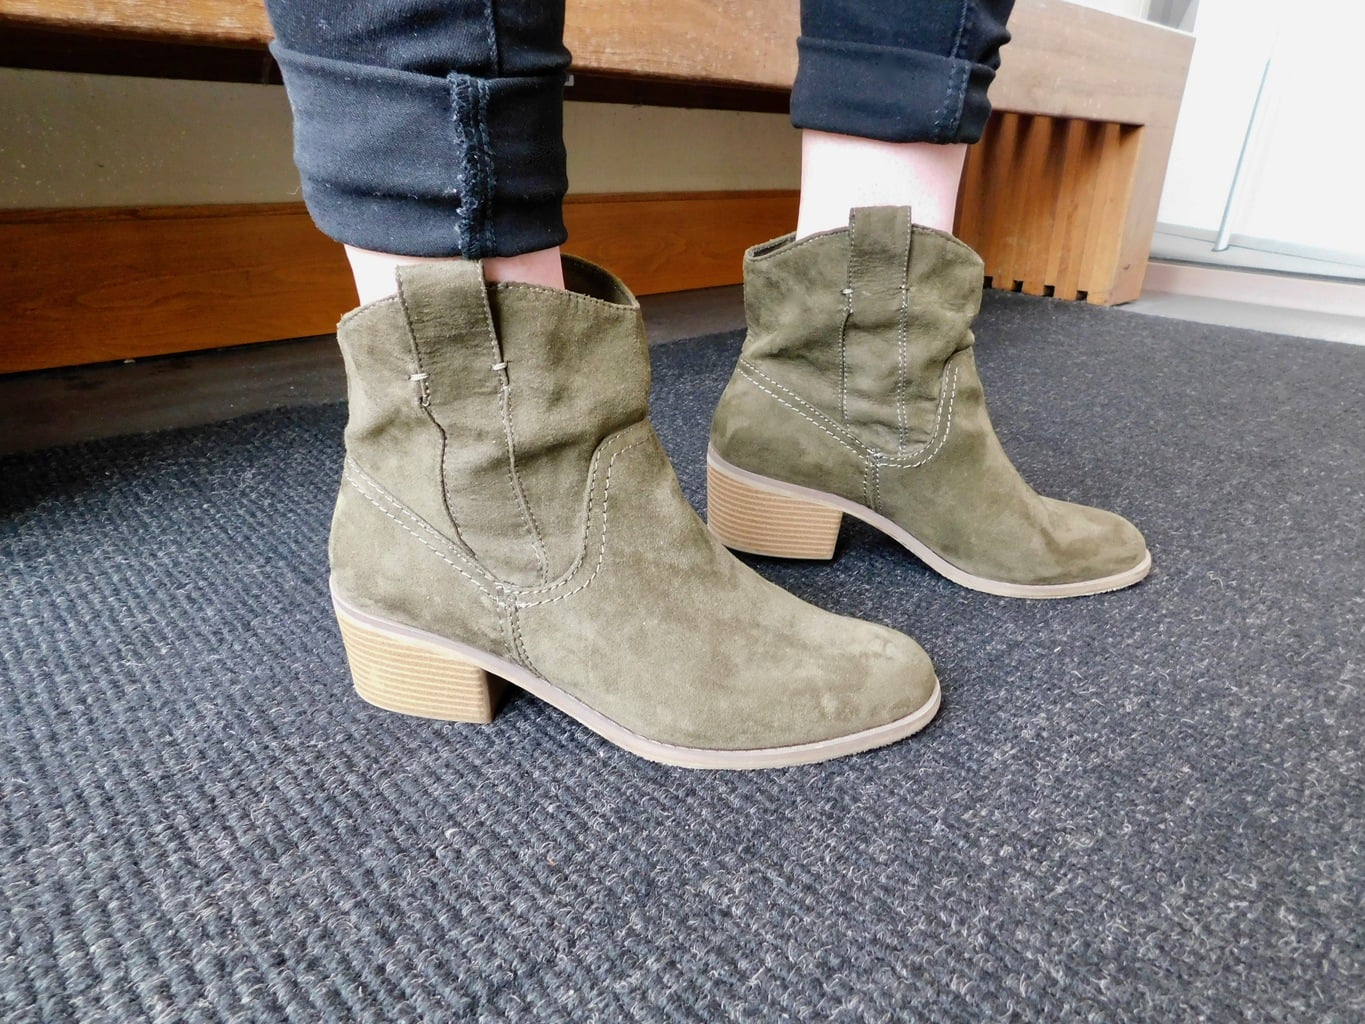 Jenna's olive green boots have a slight block heel and a Western flair.